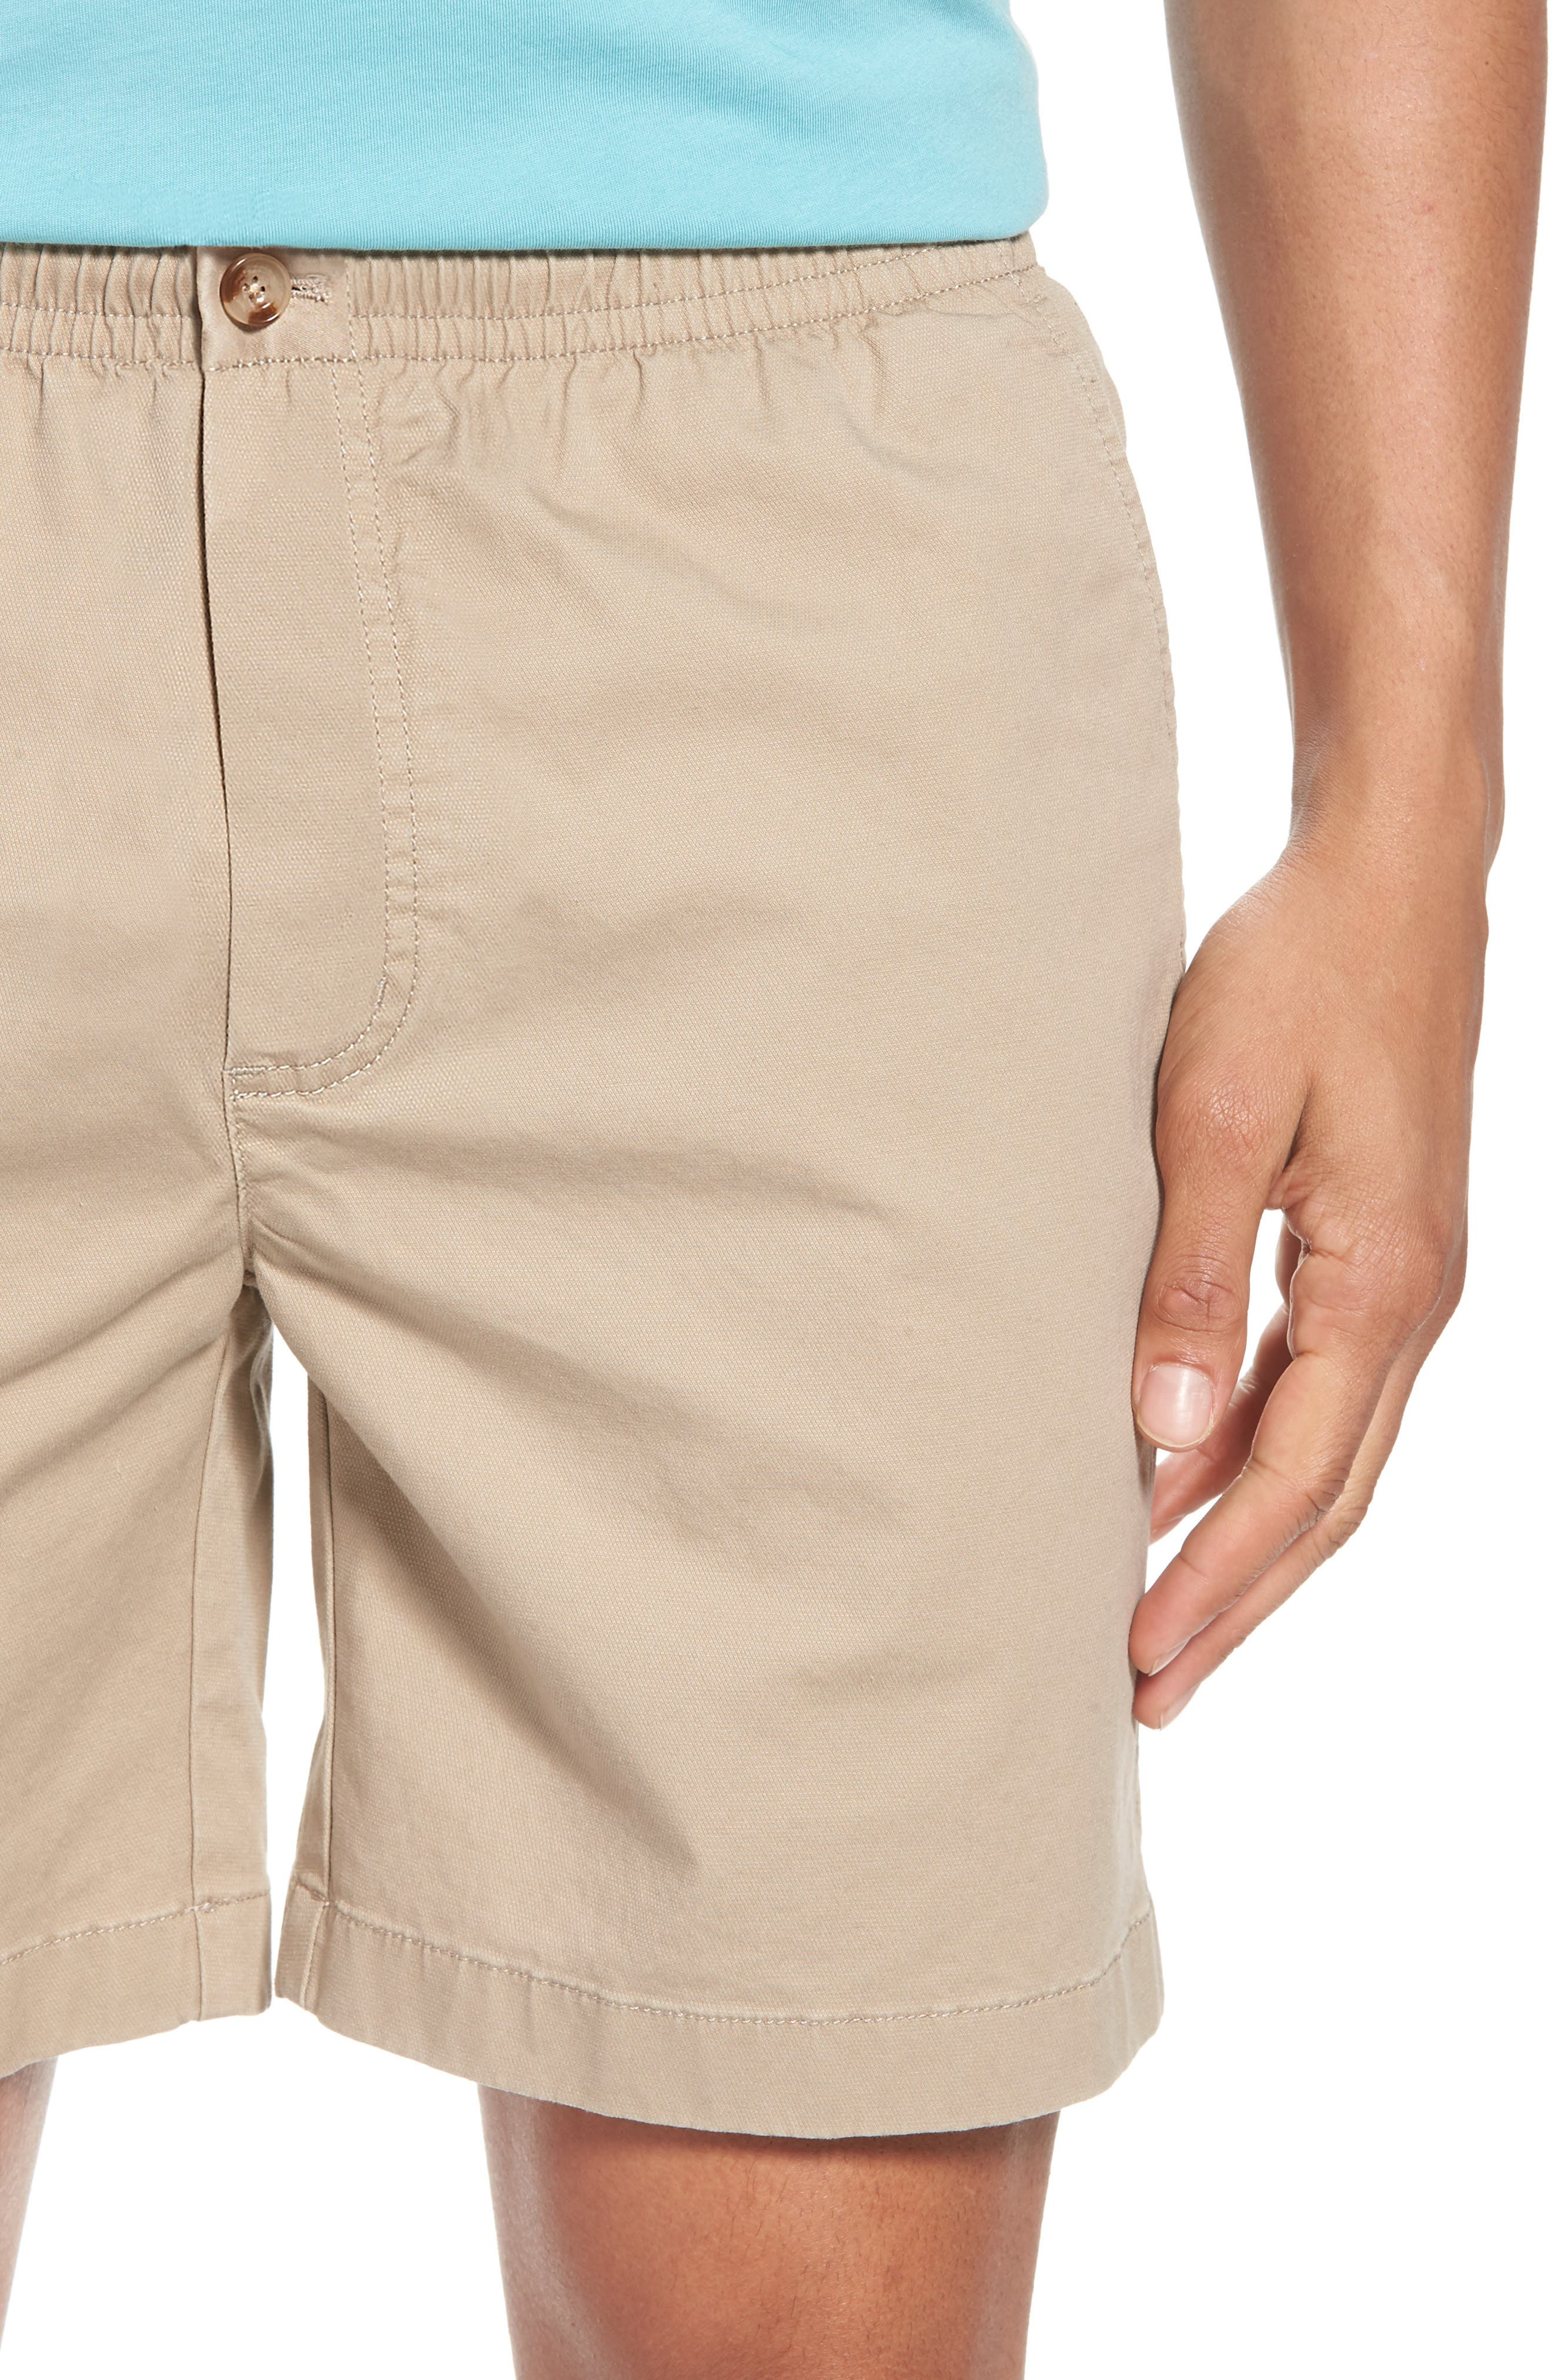 Jetty Stretch Cotton Shorts,                             Alternate thumbnail 4, color,                             250